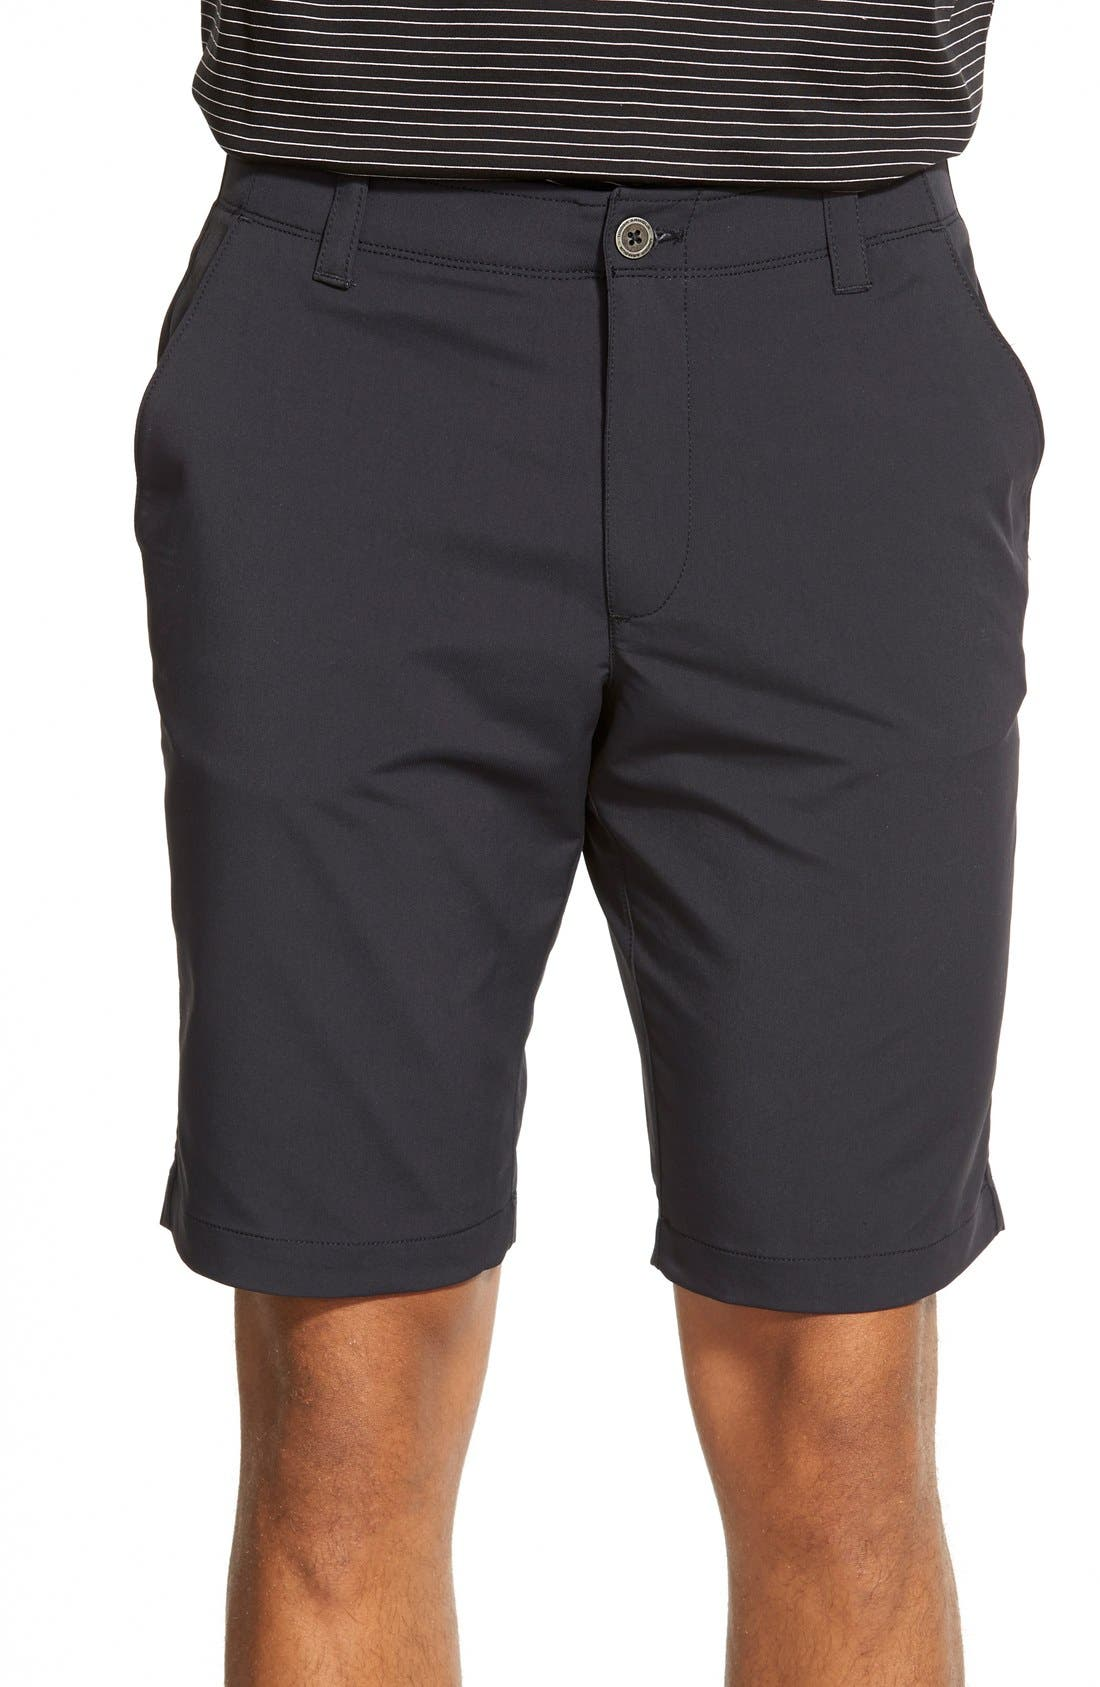 Under Armour 'Matchplay' Moisture Wicking Golf Shorts